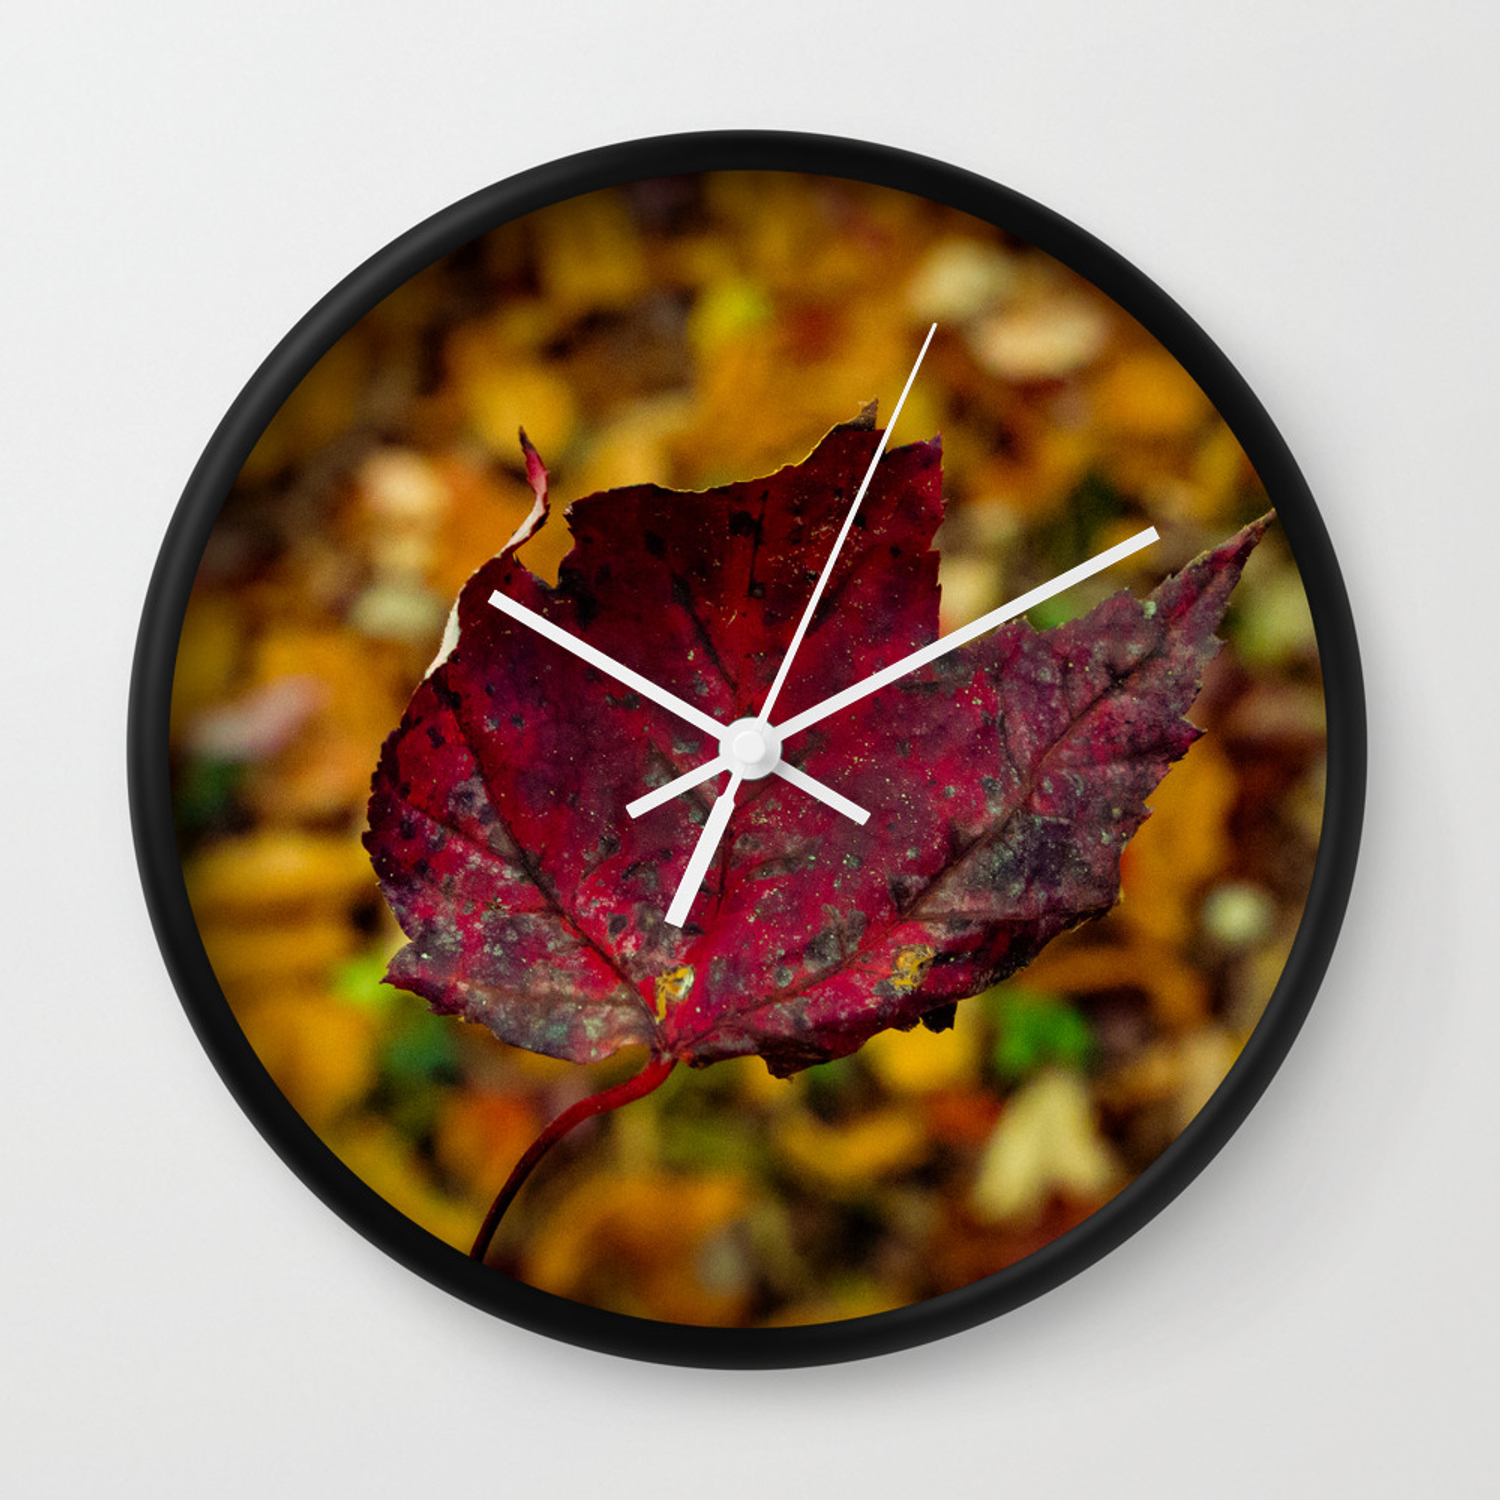 Falling Leaves Wall Clock throughout Flowing Leaves Wall Decor (Image 11 of 30)